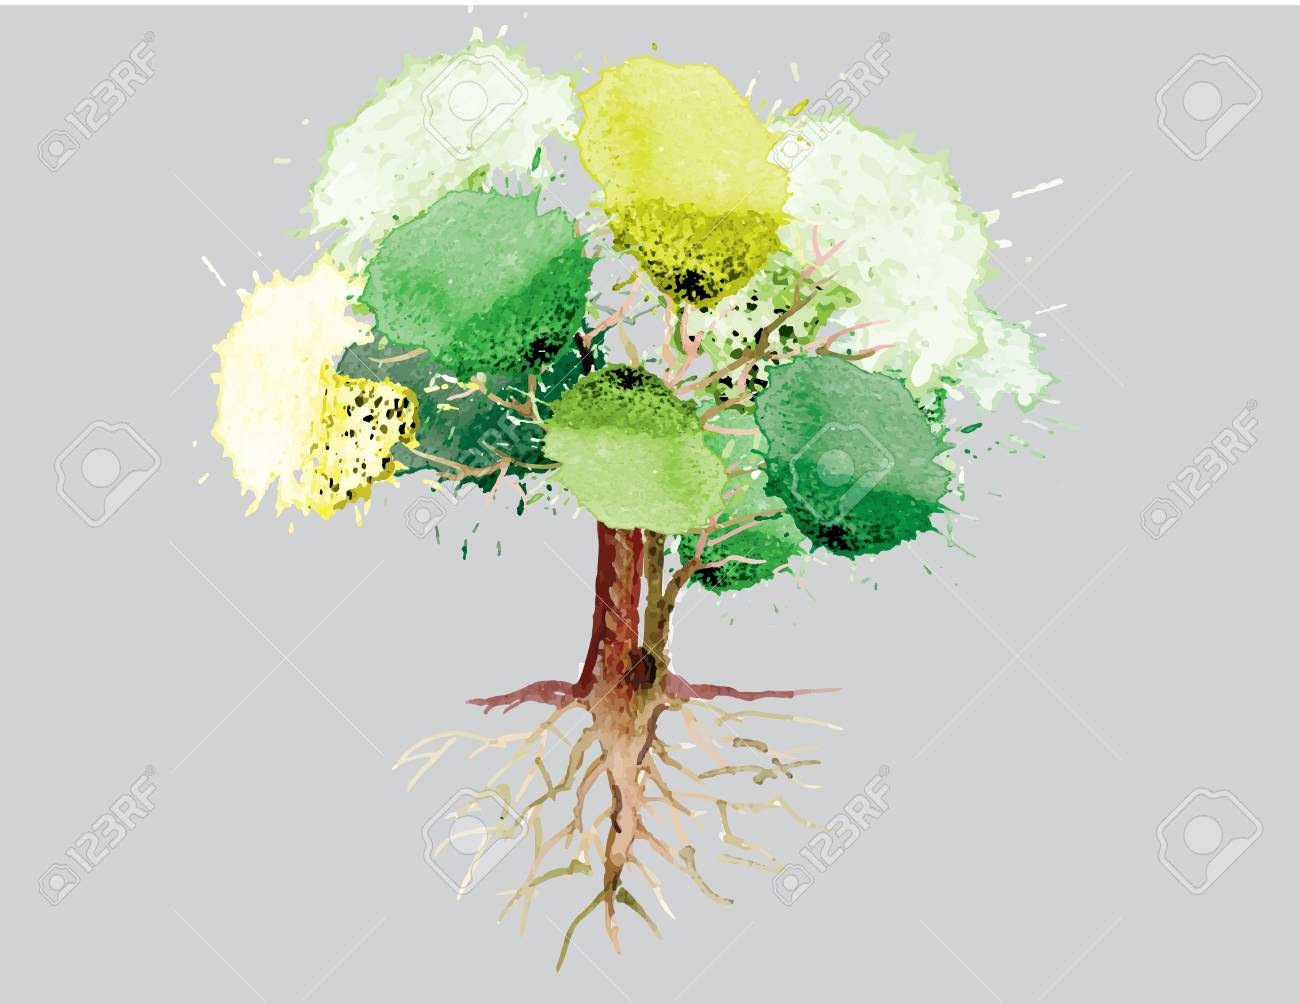 Green Tree With Roots Watercolor Design Vector Illustration Royalty Free Cliparts Vectors And Stock Illustration Image 49513660